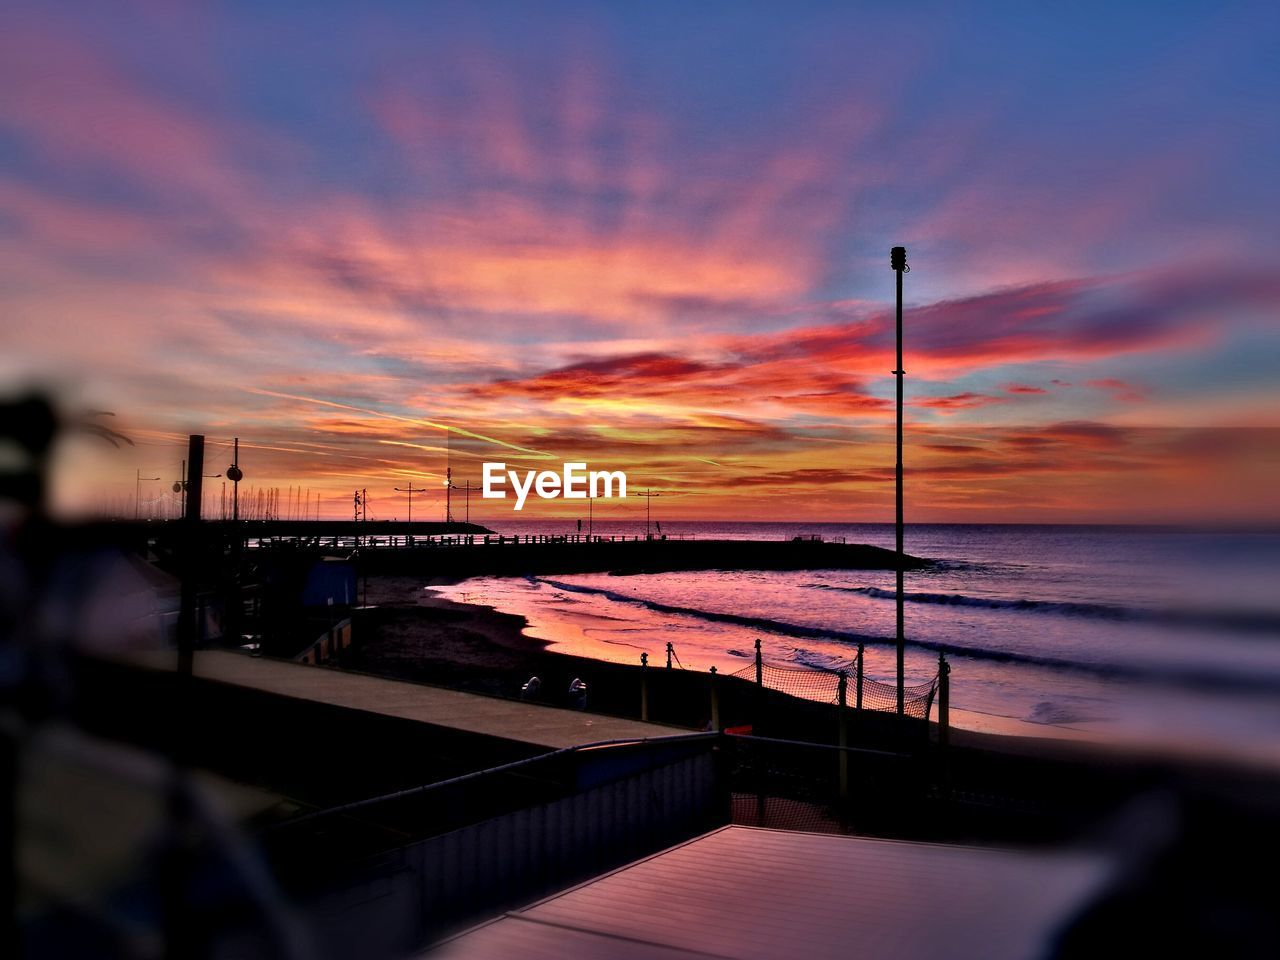 sunset, sky, cloud - sky, water, scenics - nature, beauty in nature, nature, sea, orange color, tranquility, no people, tranquil scene, dramatic sky, idyllic, outdoors, connection, railing, street light, street